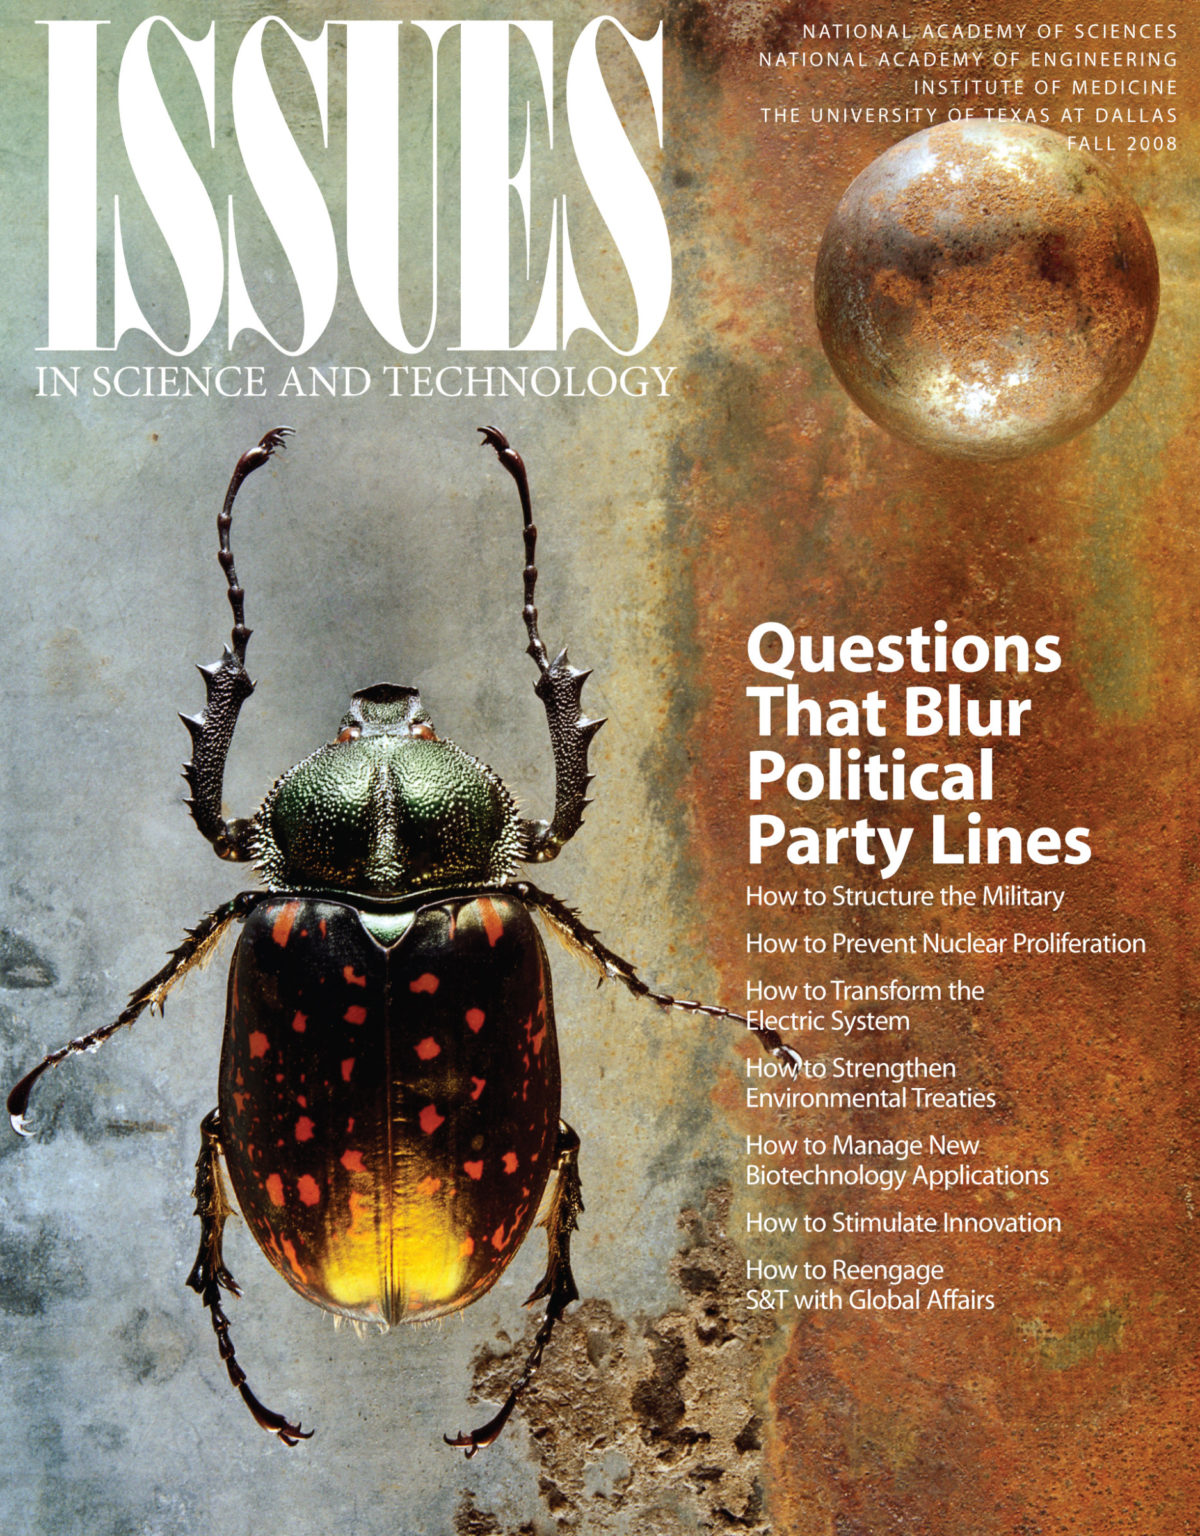 Issues Fall 2008 Questions That Blur Political Party Lines Front Cover with Photo of a Beetle